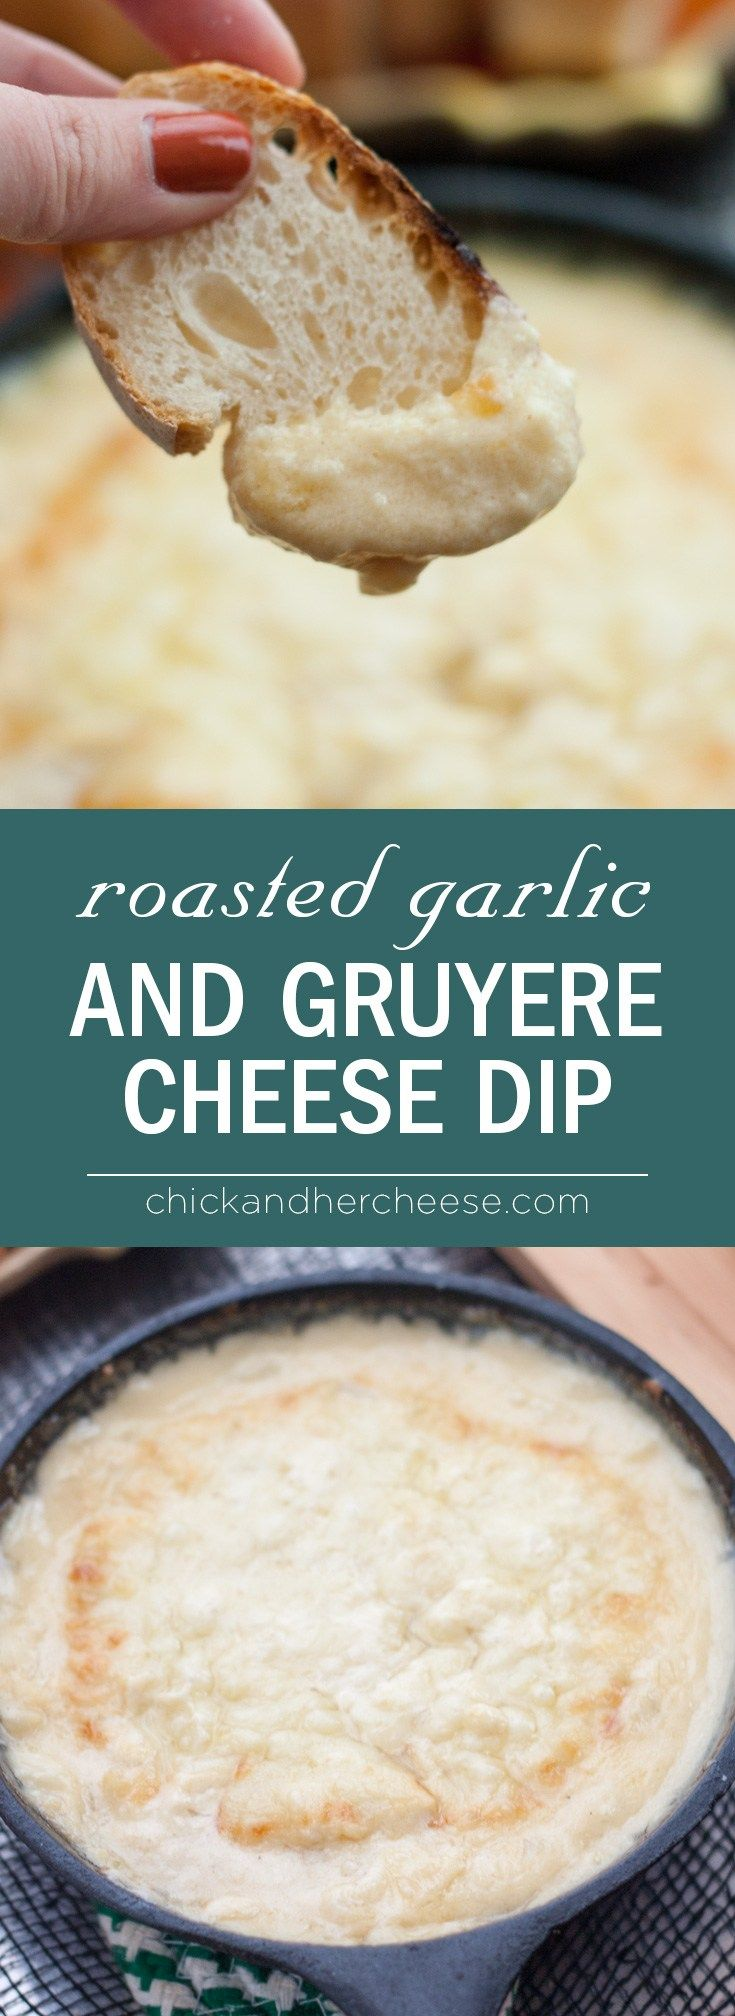 Roasted Garlic and Gruyere Cheese Dip - Super easy, perfect for last minute halloween parties, this tangy and garlicky warm cheese dip is sure to keep the vampires away while also pleasing your guests! I couldn't keep them away.   chickandhercheese.com